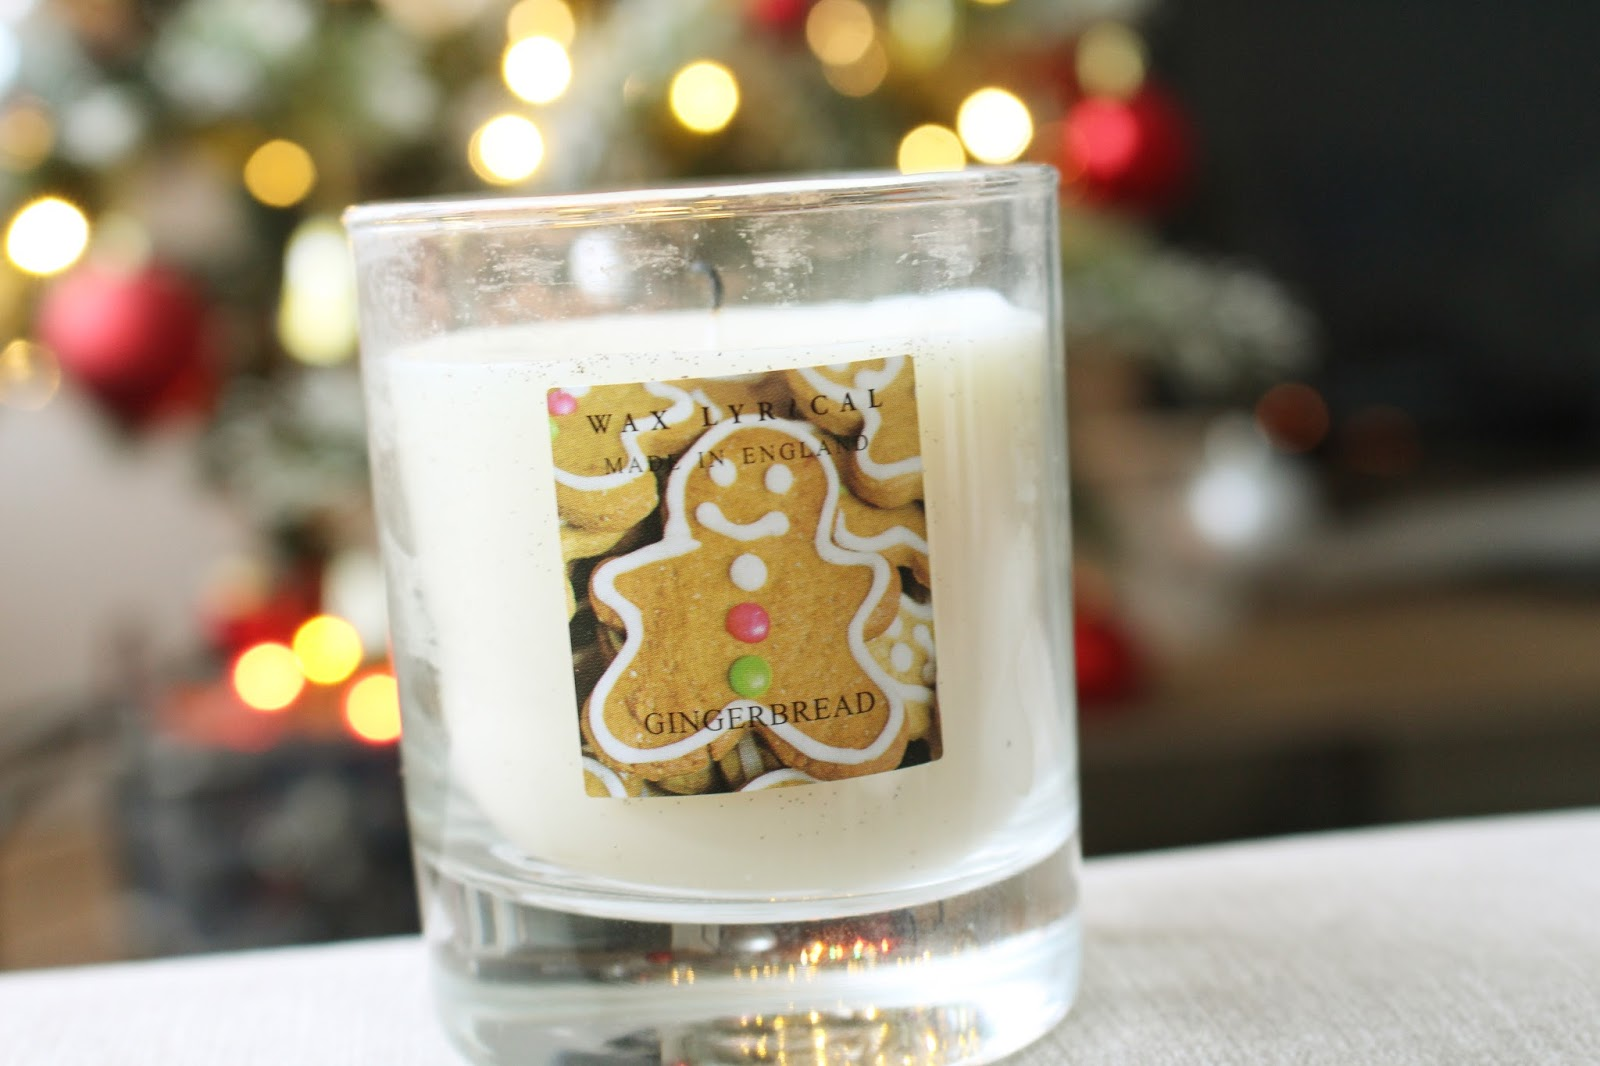 Asda Wax Lyrical Gingerbread Candle